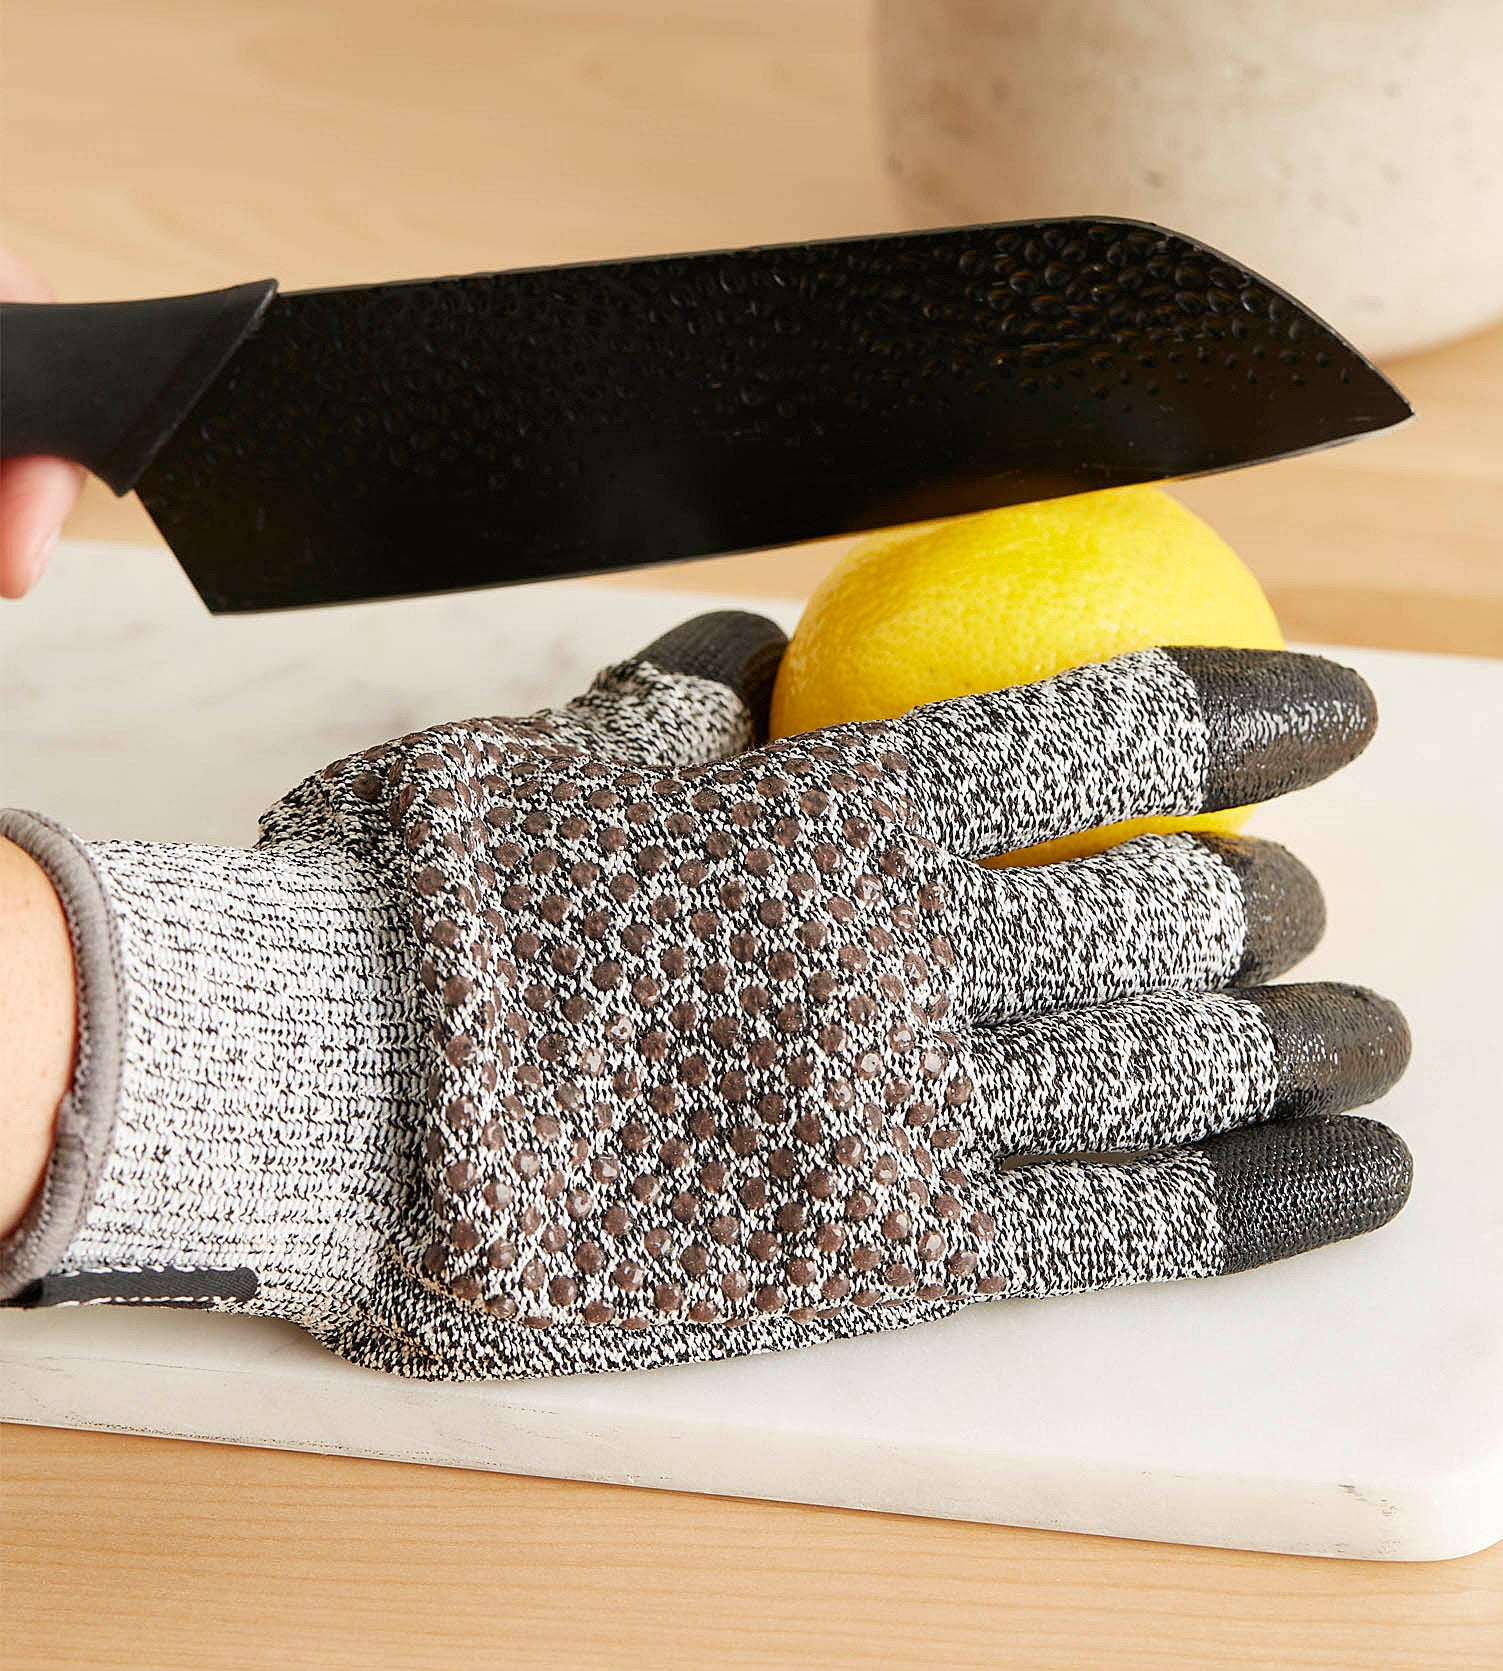 A person wearing the glove and cutting a lemon